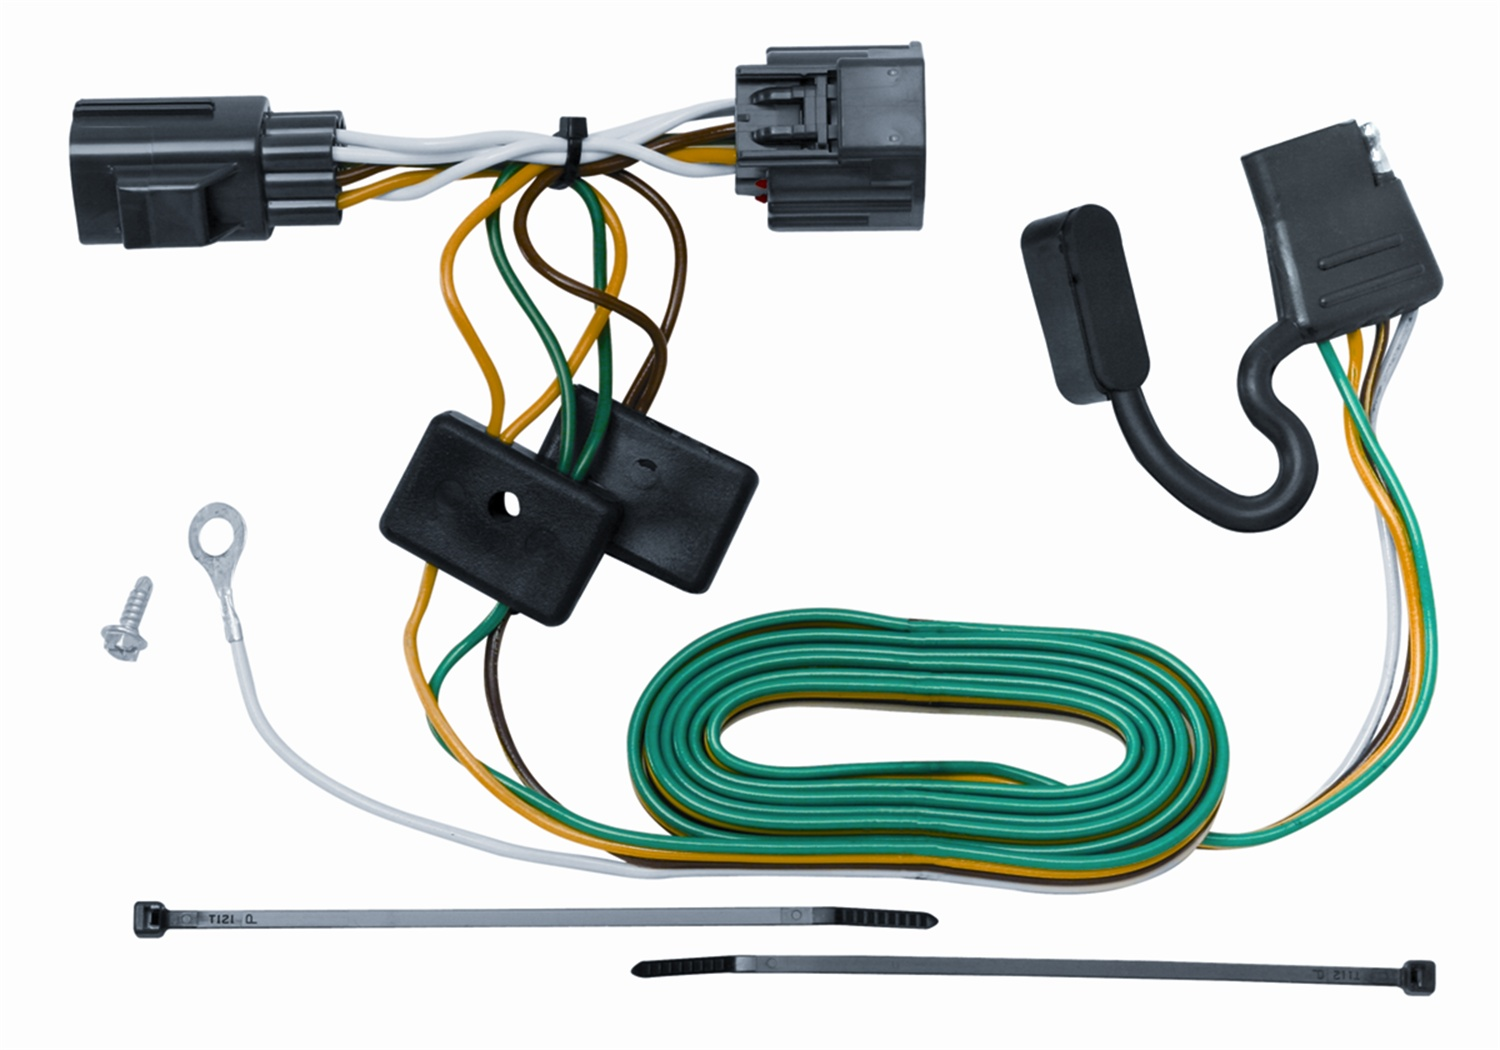 Jeep Wrangler Trailer Wiring Electrical Wiring Diagrams 2006 Jeep Liberty  Wiring-Diagram Trailer Wiring Jeep Wrangler Unlimited